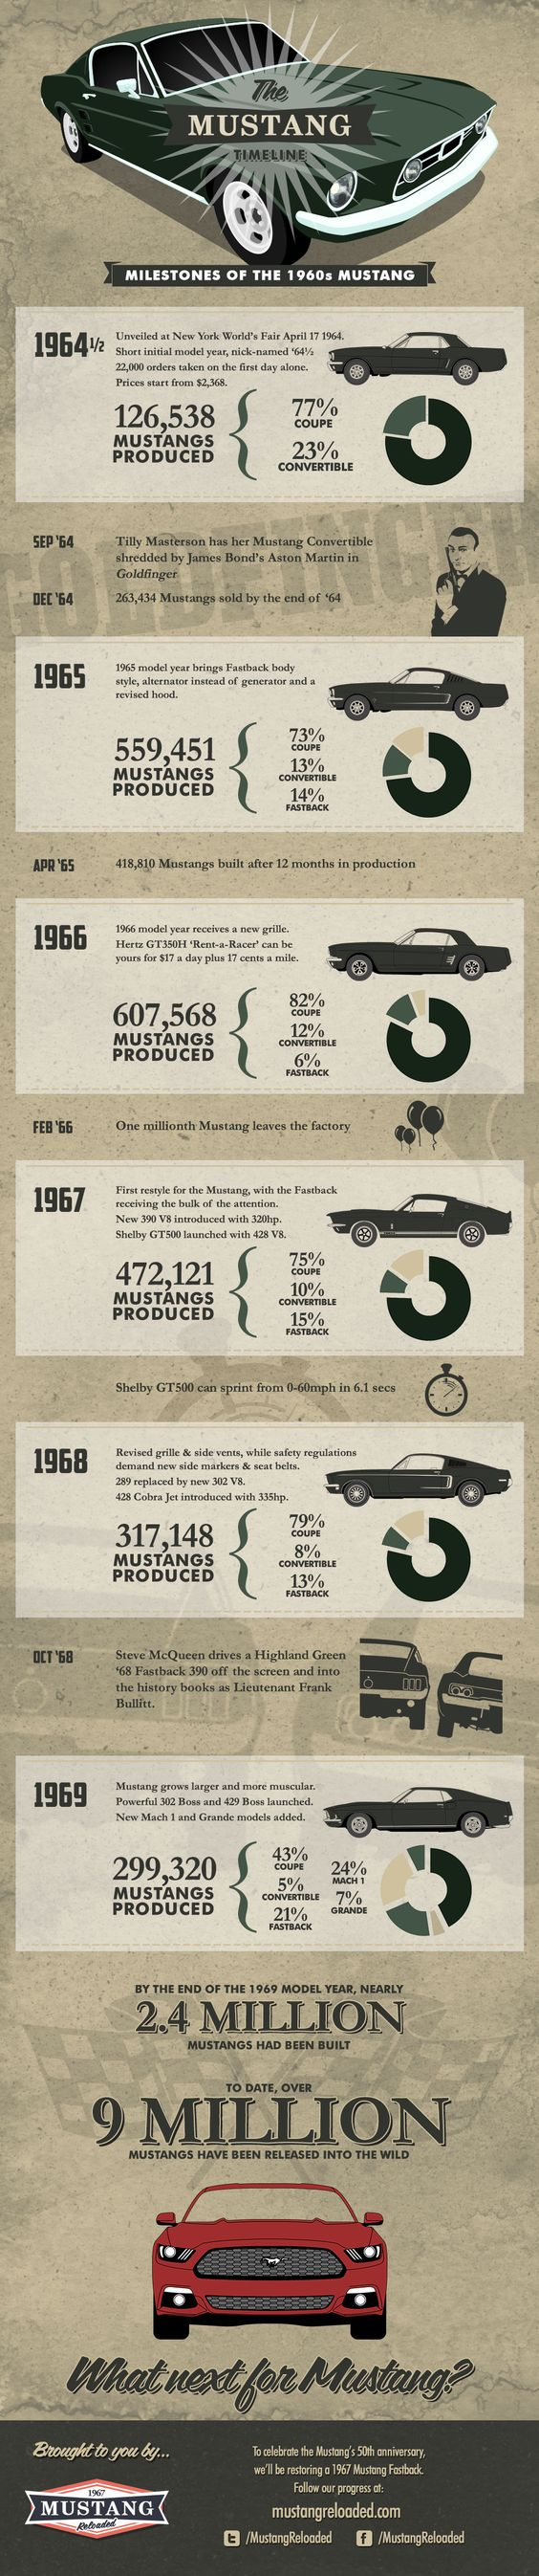 Infographic: The Mustang Timeline #infographic